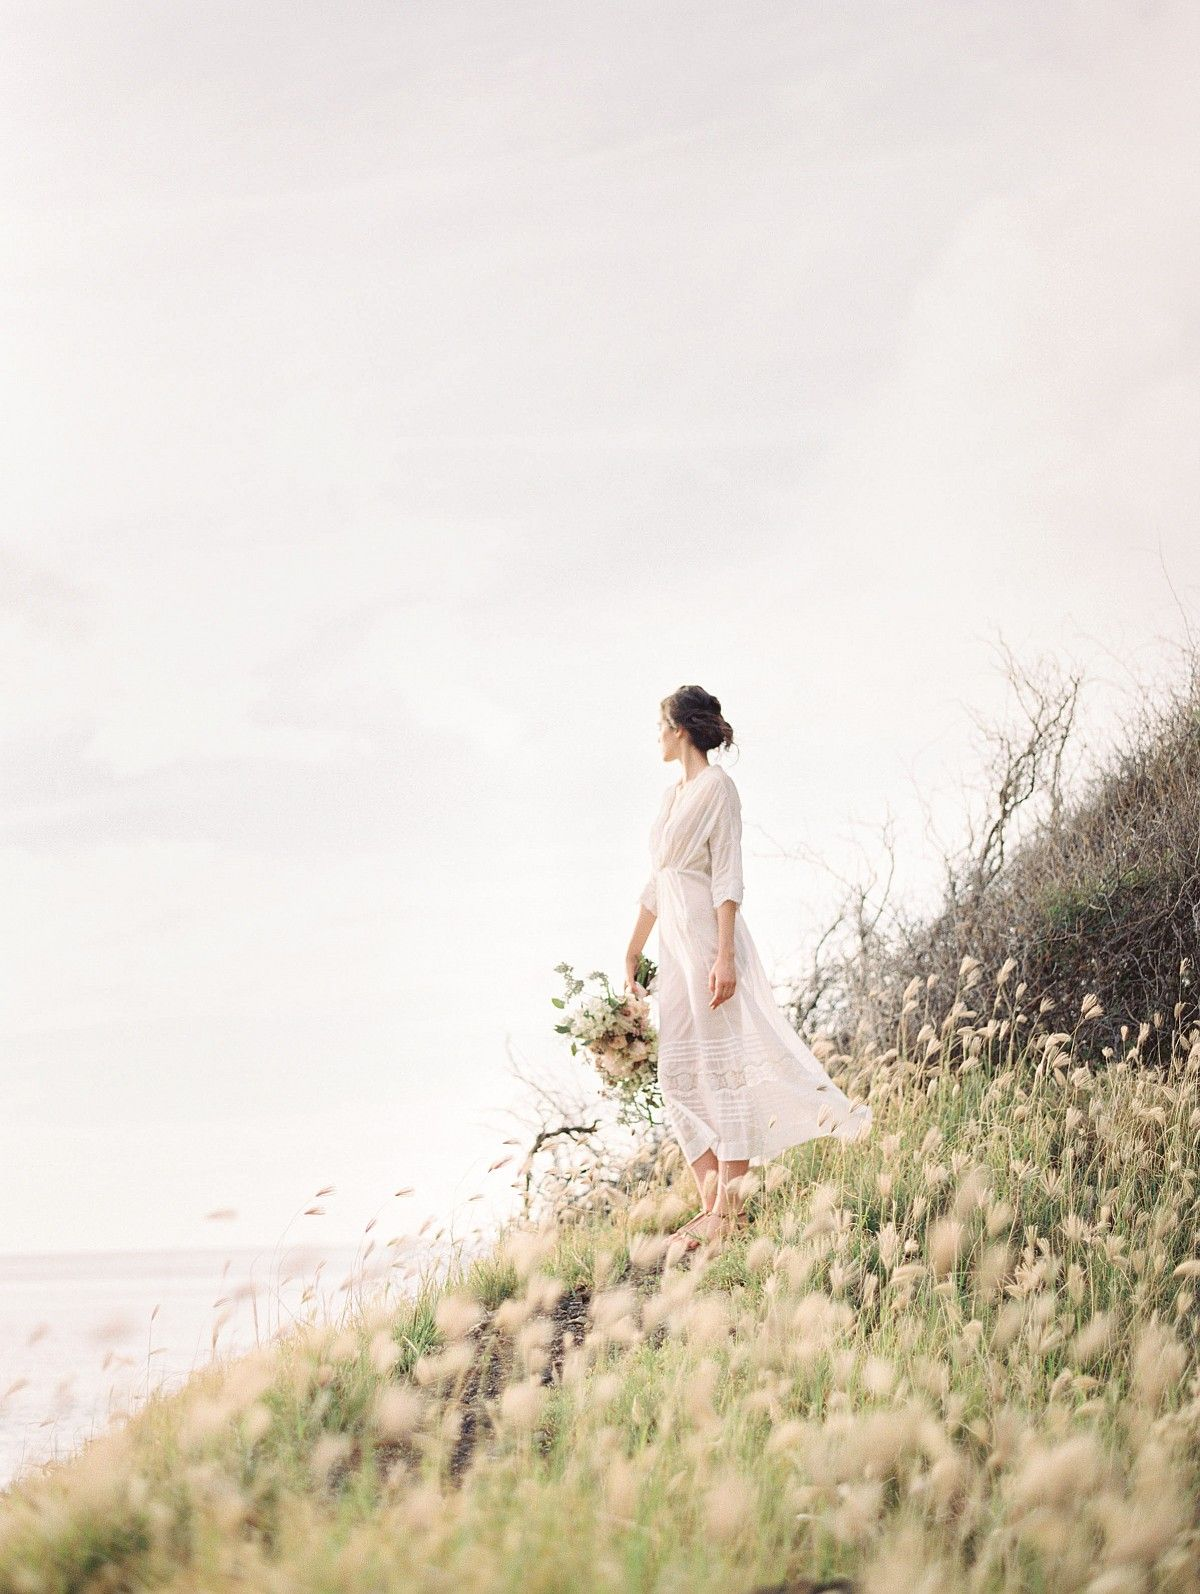 Ethereal and romantic bridal style among the hawaiian hills by